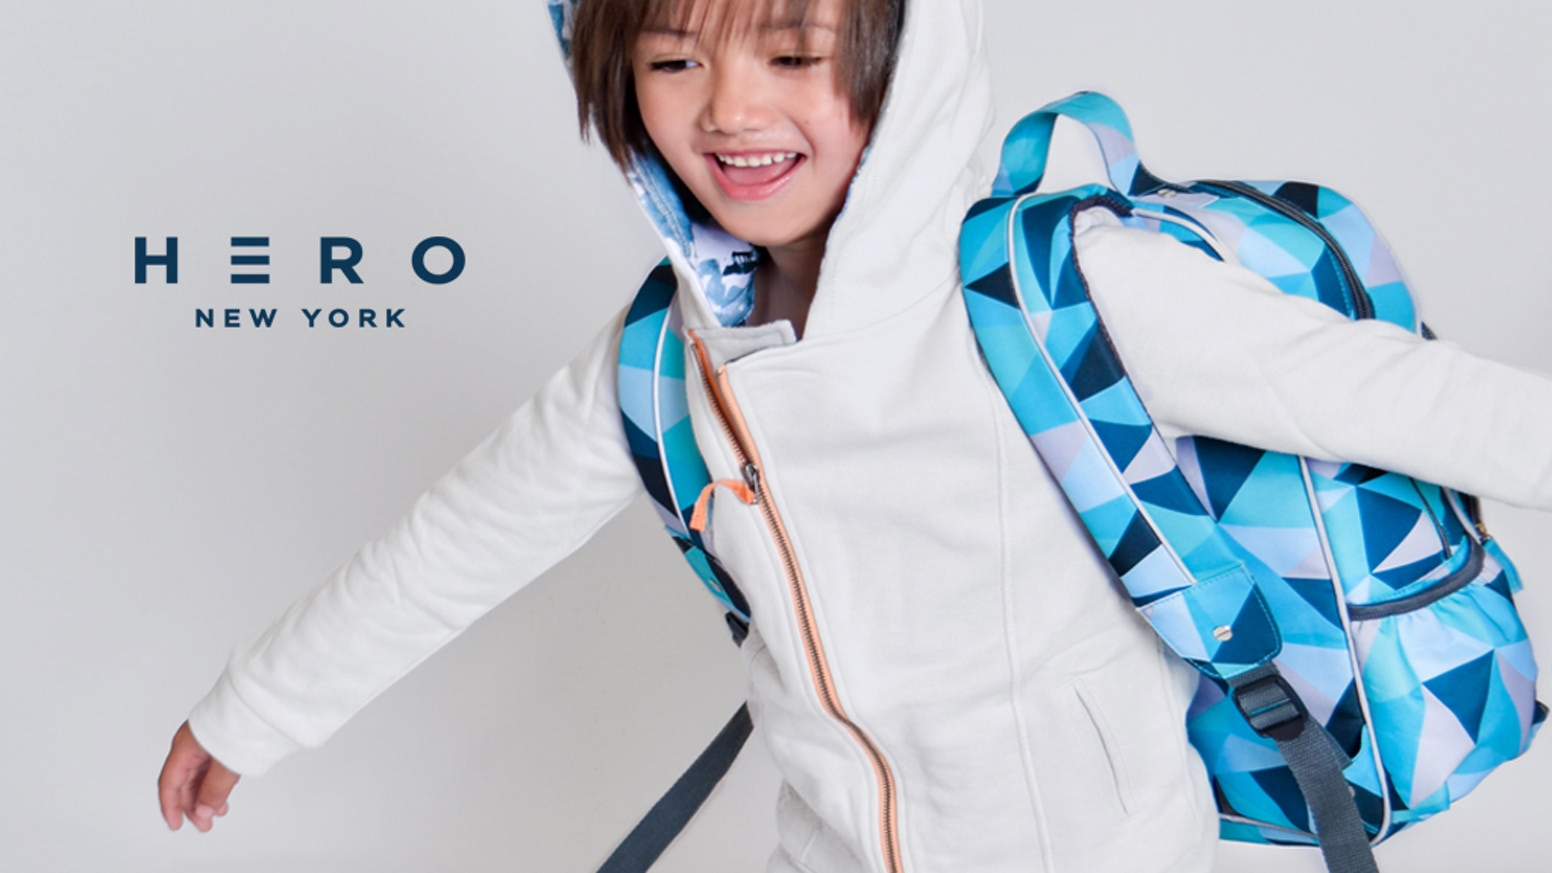 We make bright, eye-catching backpacks that carry confidence, designed to inspire your inner hero.